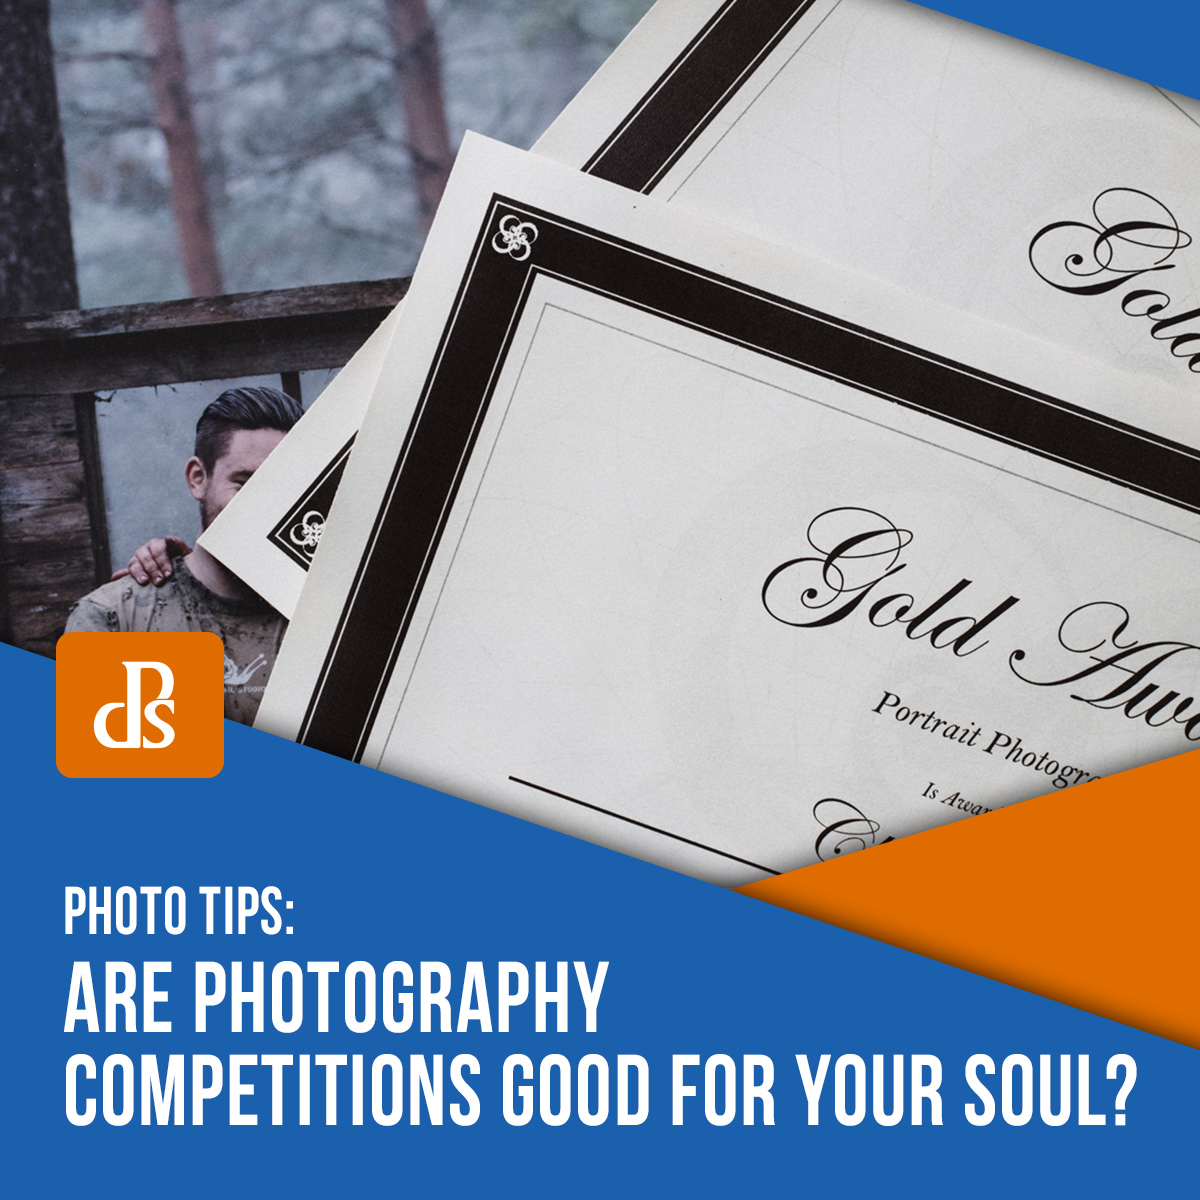 are-photography-competitions-good-for-your-soul